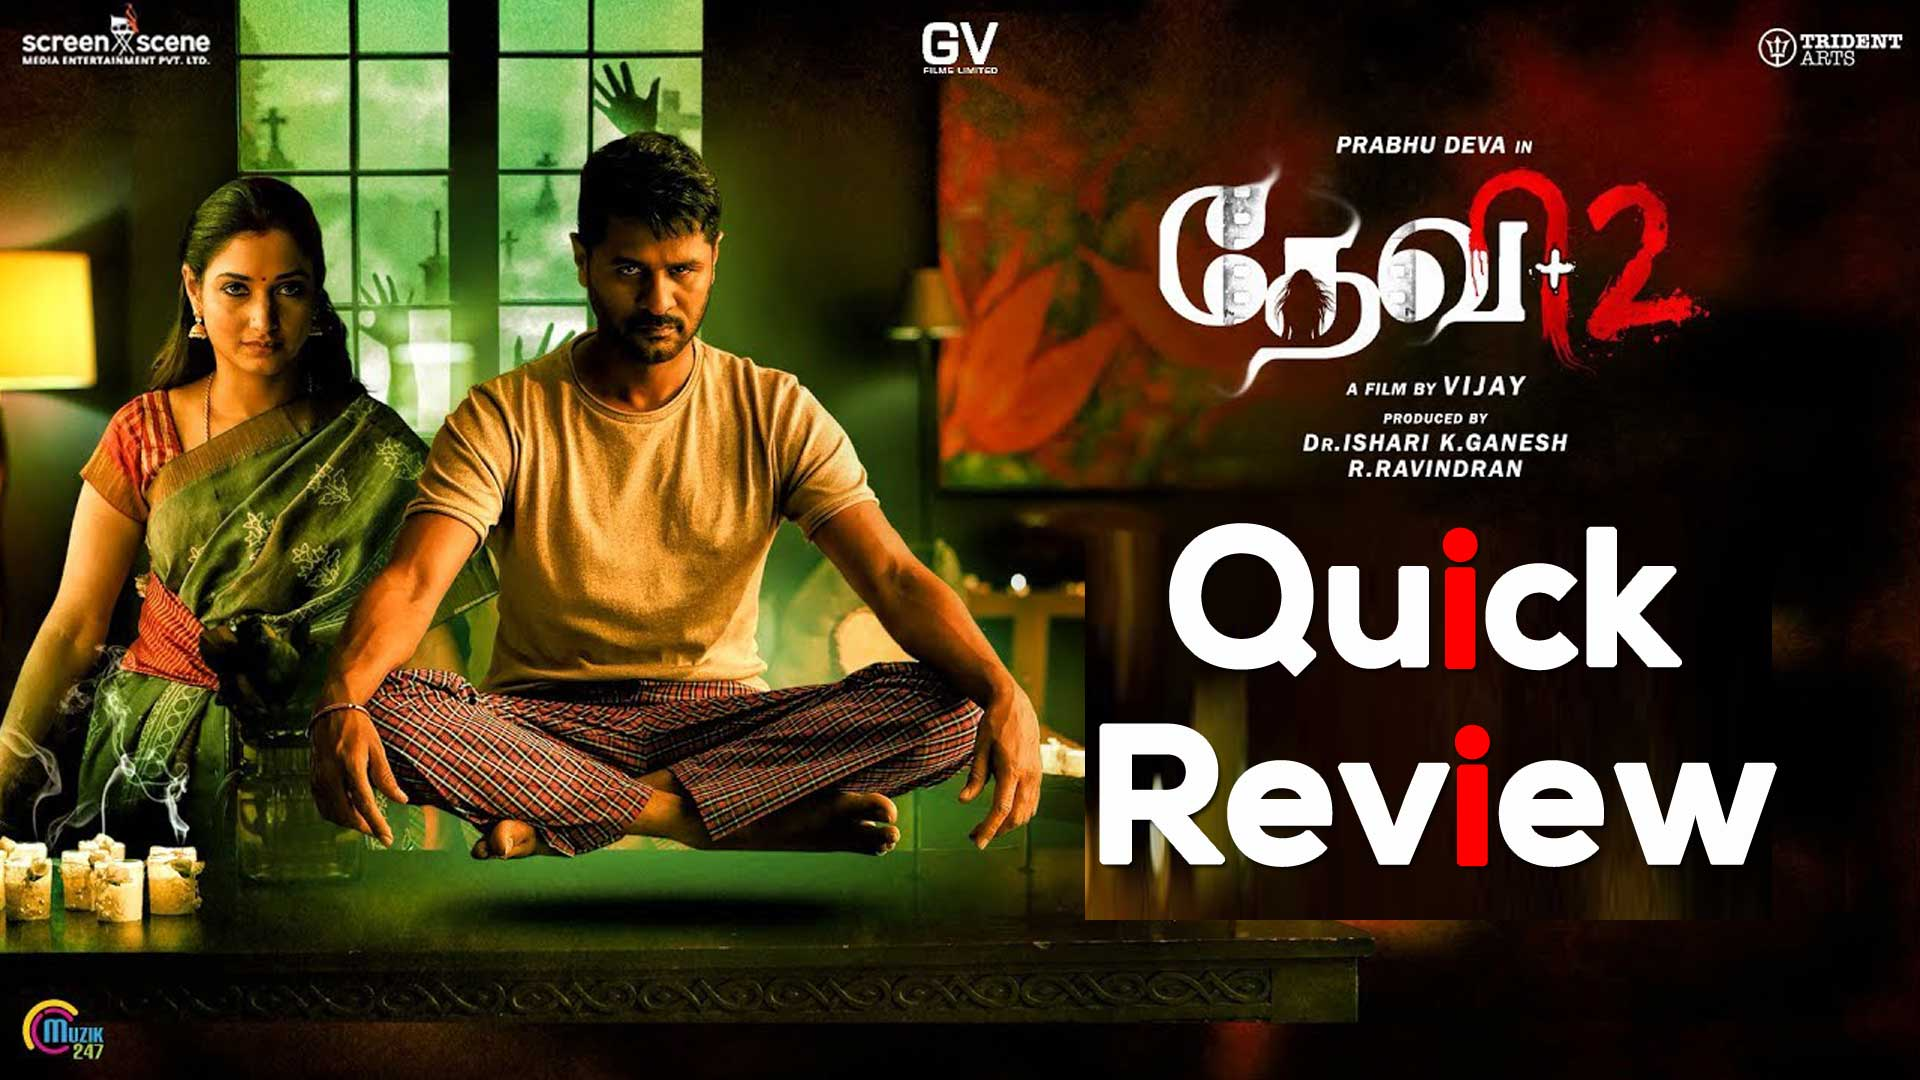 Devi 2 Movie Review by Praveena | Prabhu Deva, Tamannaah, RJ Balaji | Devi 2 Quick Review in Tamil